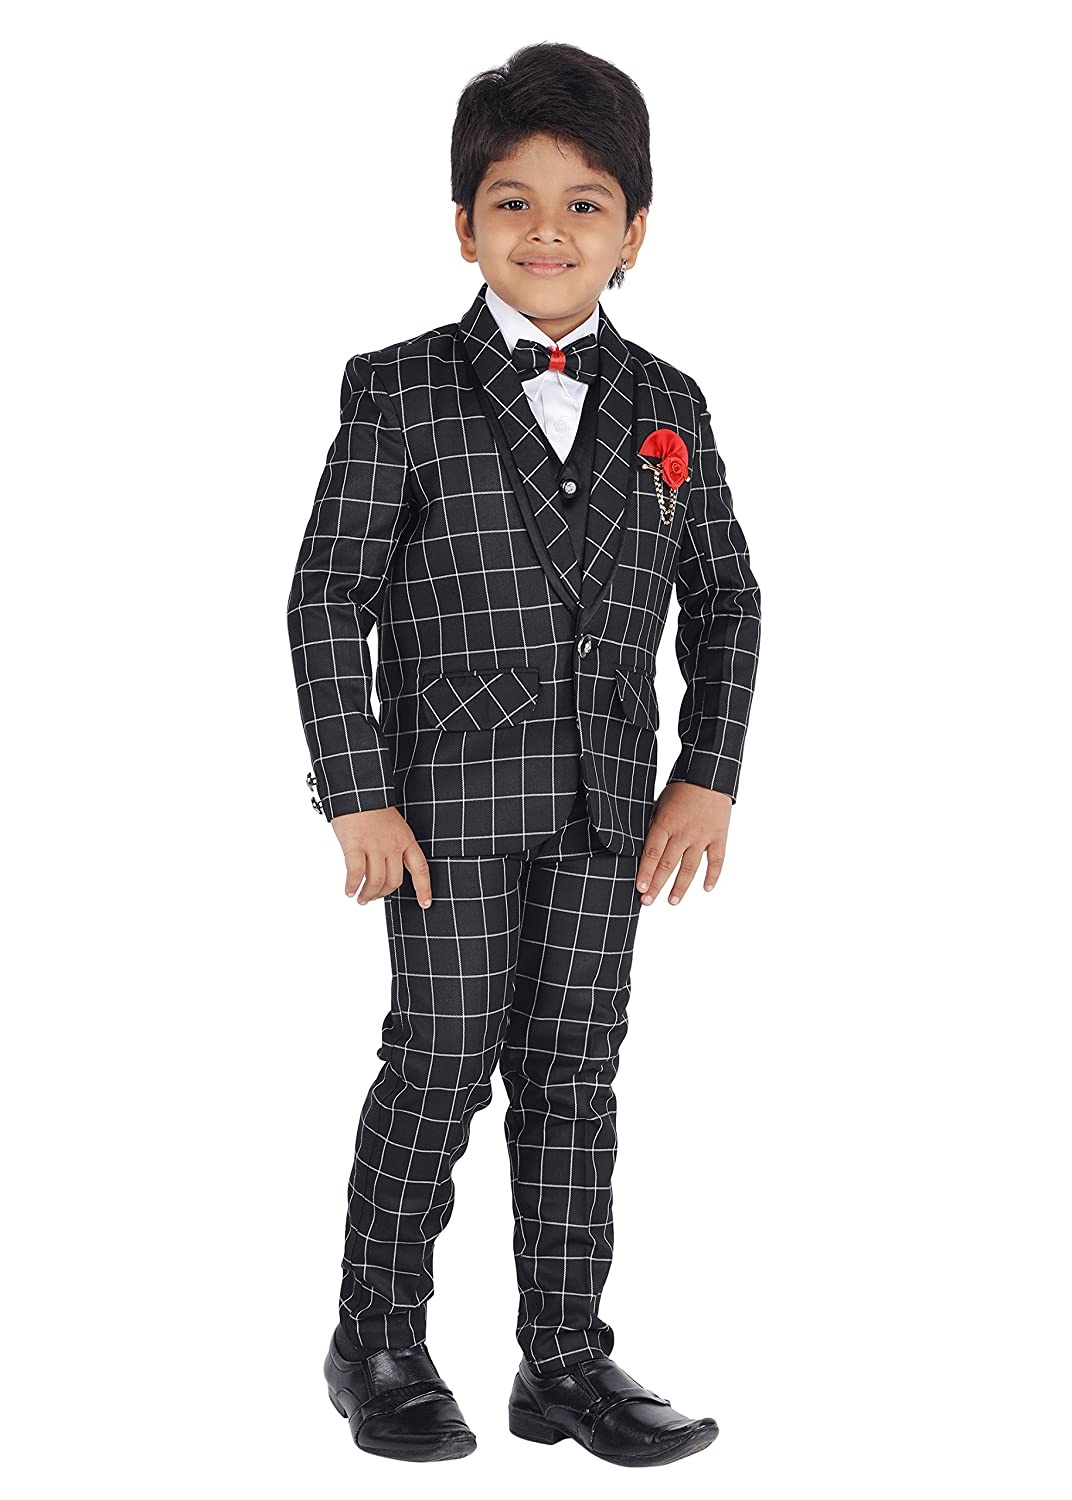 0ef83a79055 Amazon.com  ahhaaaa Kids Party Wear 5 Pc Boys Formal Suit